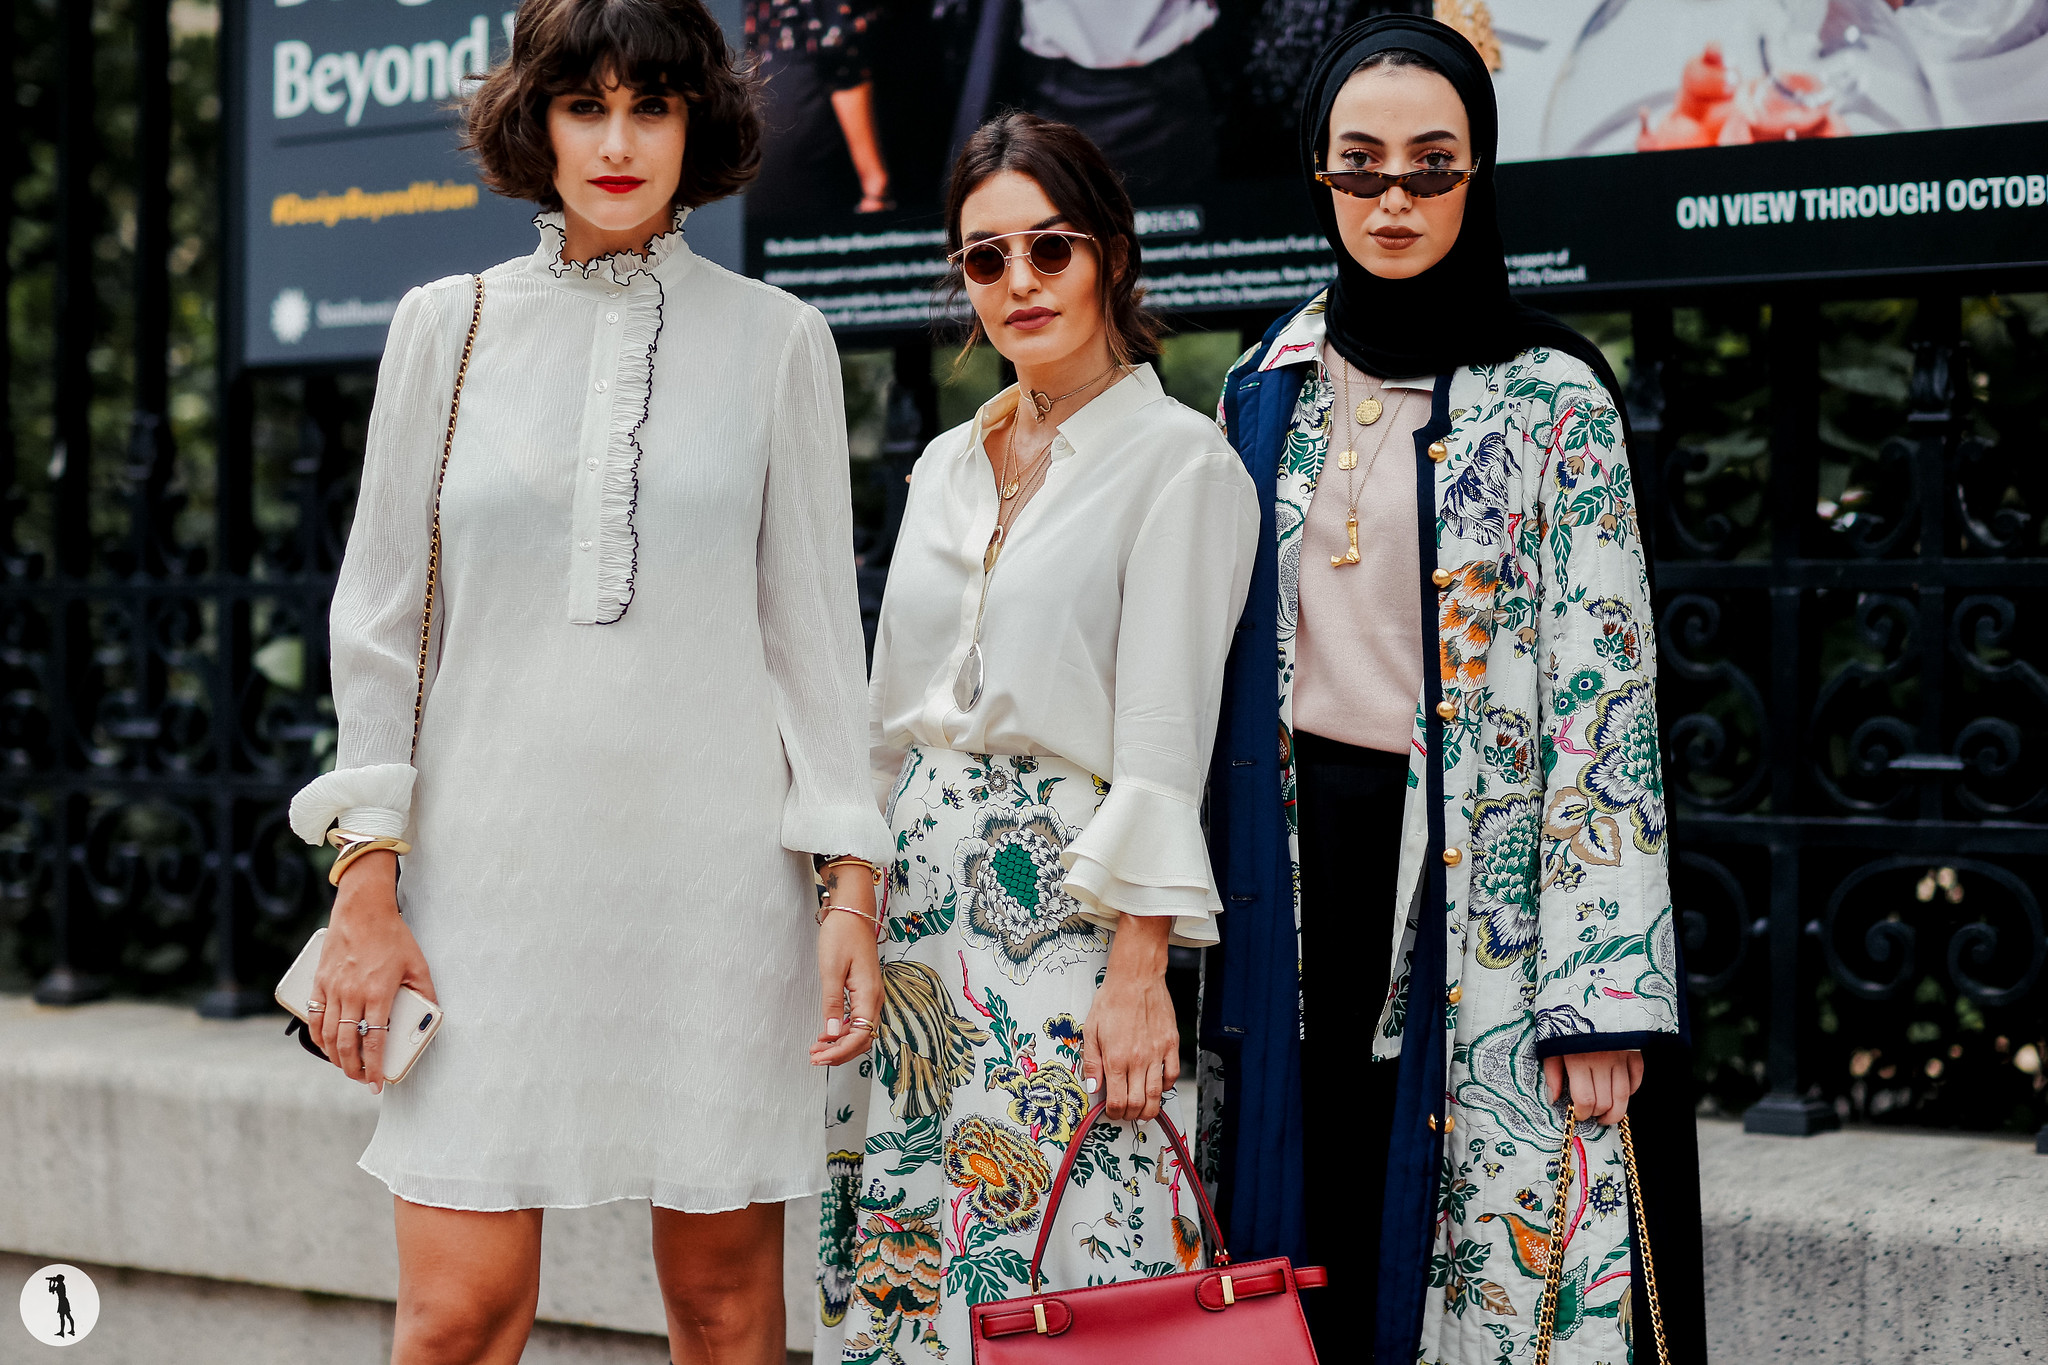 Nour Arida, Karen Wazen Bakhazi and Leena Al Ghouti - New York Fashion Week SS19 (1)